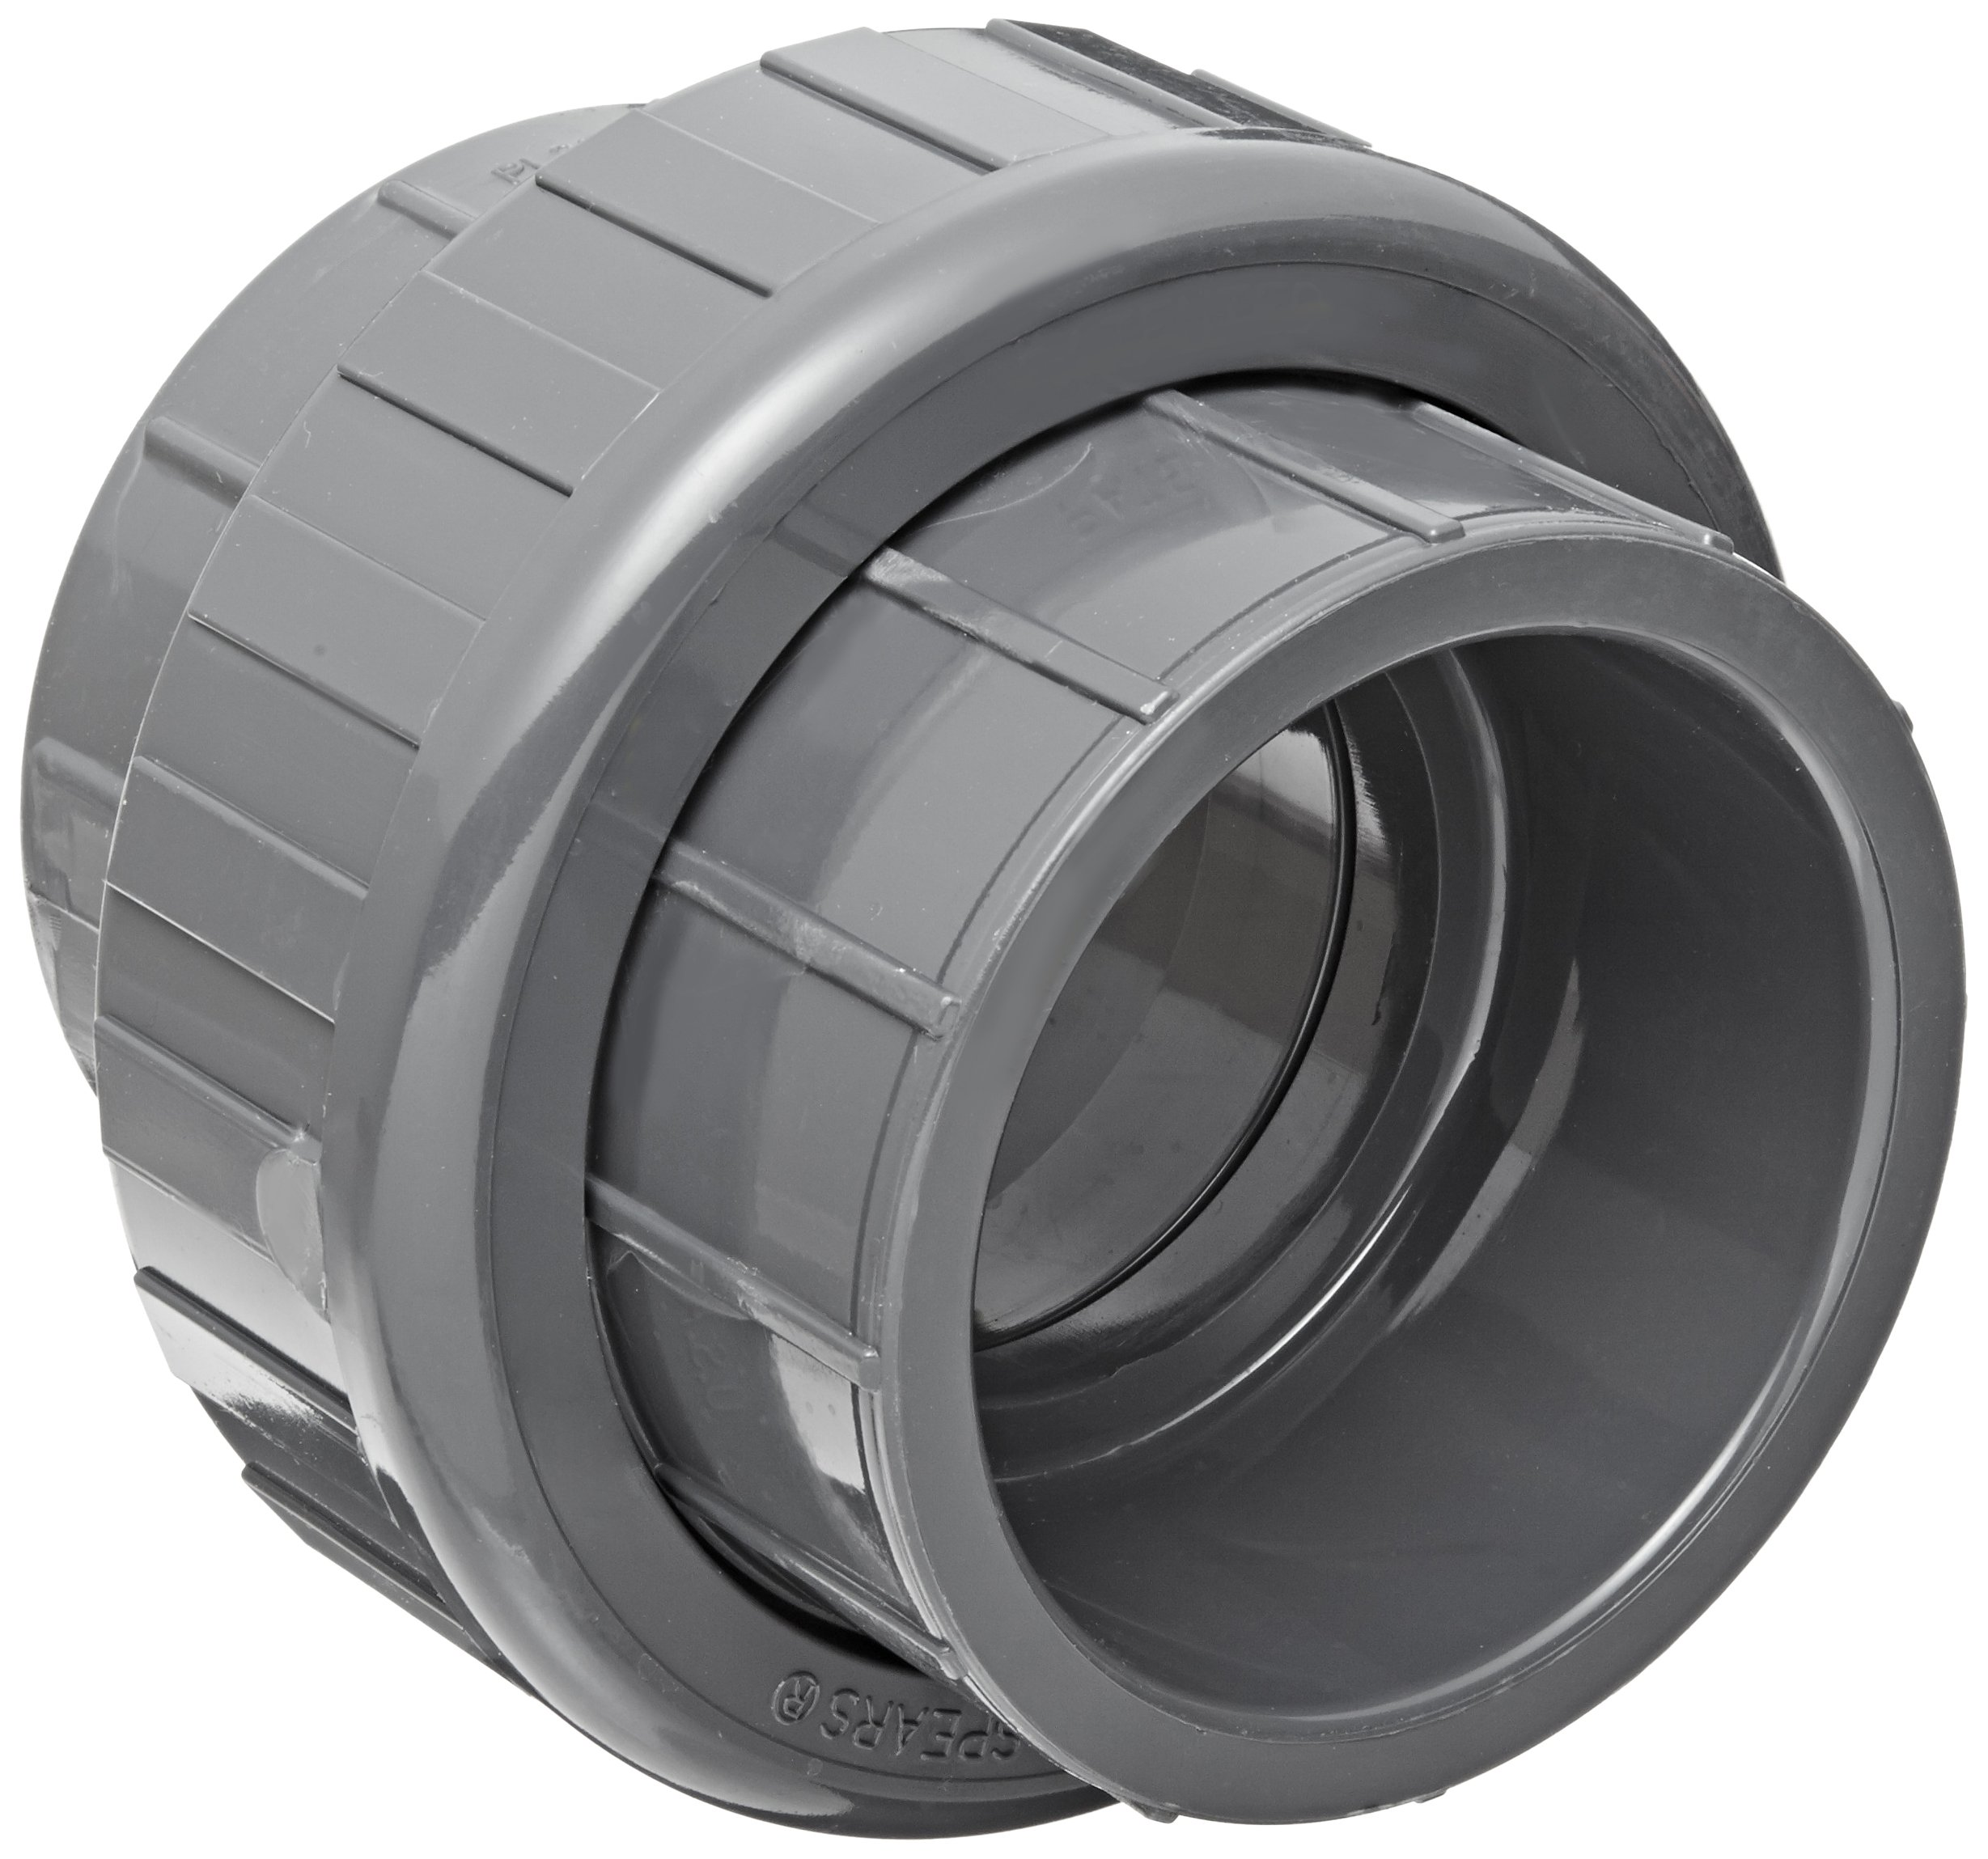 Spears 897 Series PVC Pipe Fitting, Union with EPDM O-Ring, Schedule 80, 3'' Socket